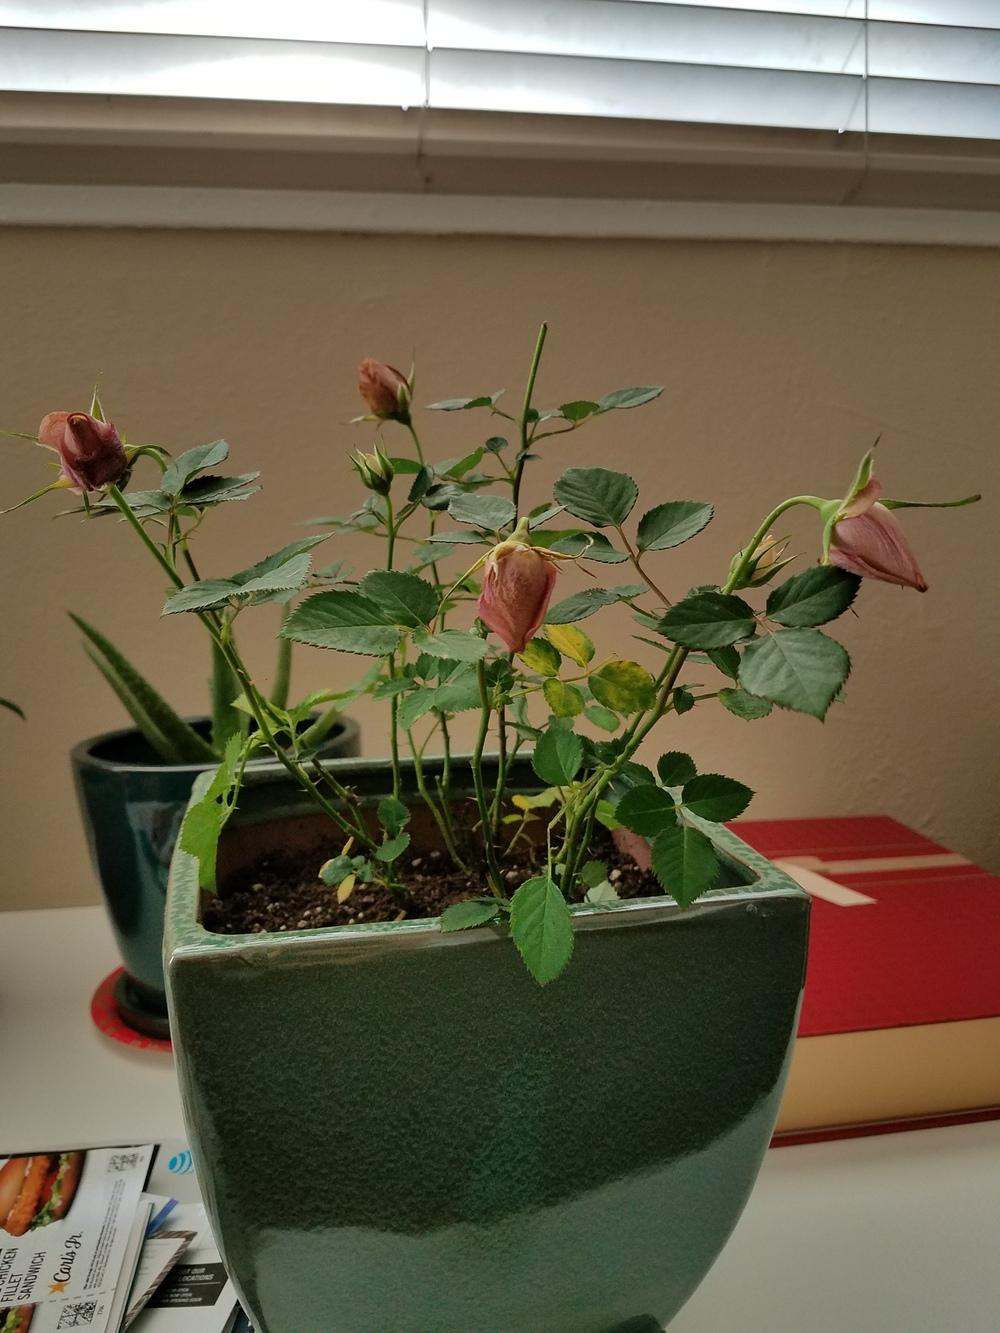 Roses forum: Help! My boyfriend gave me miniature roses and they're